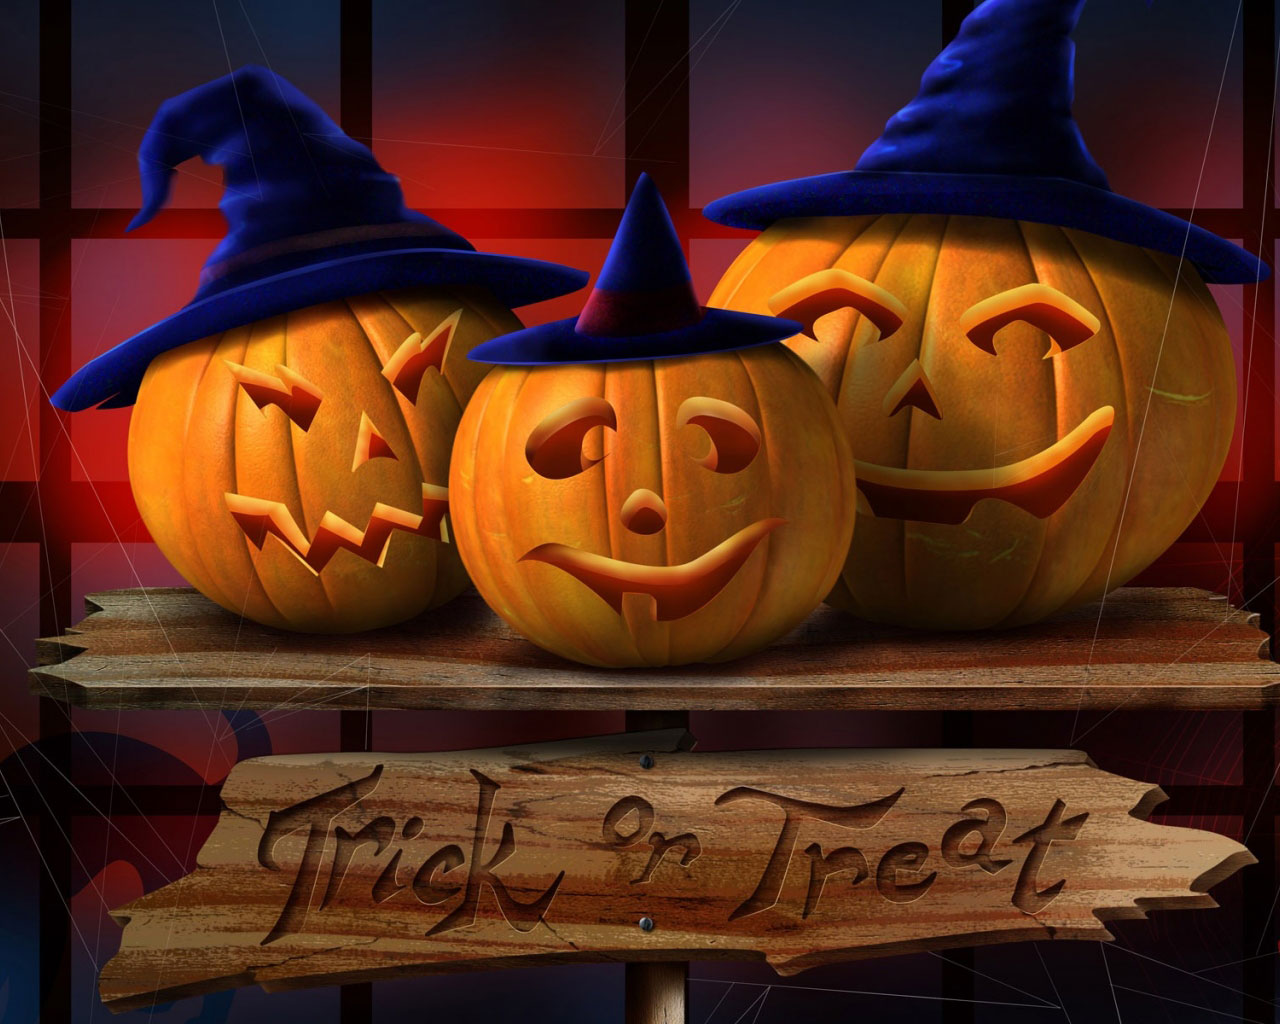 Halloween Pumpkin Trick Or Treat Wallpaper 2015